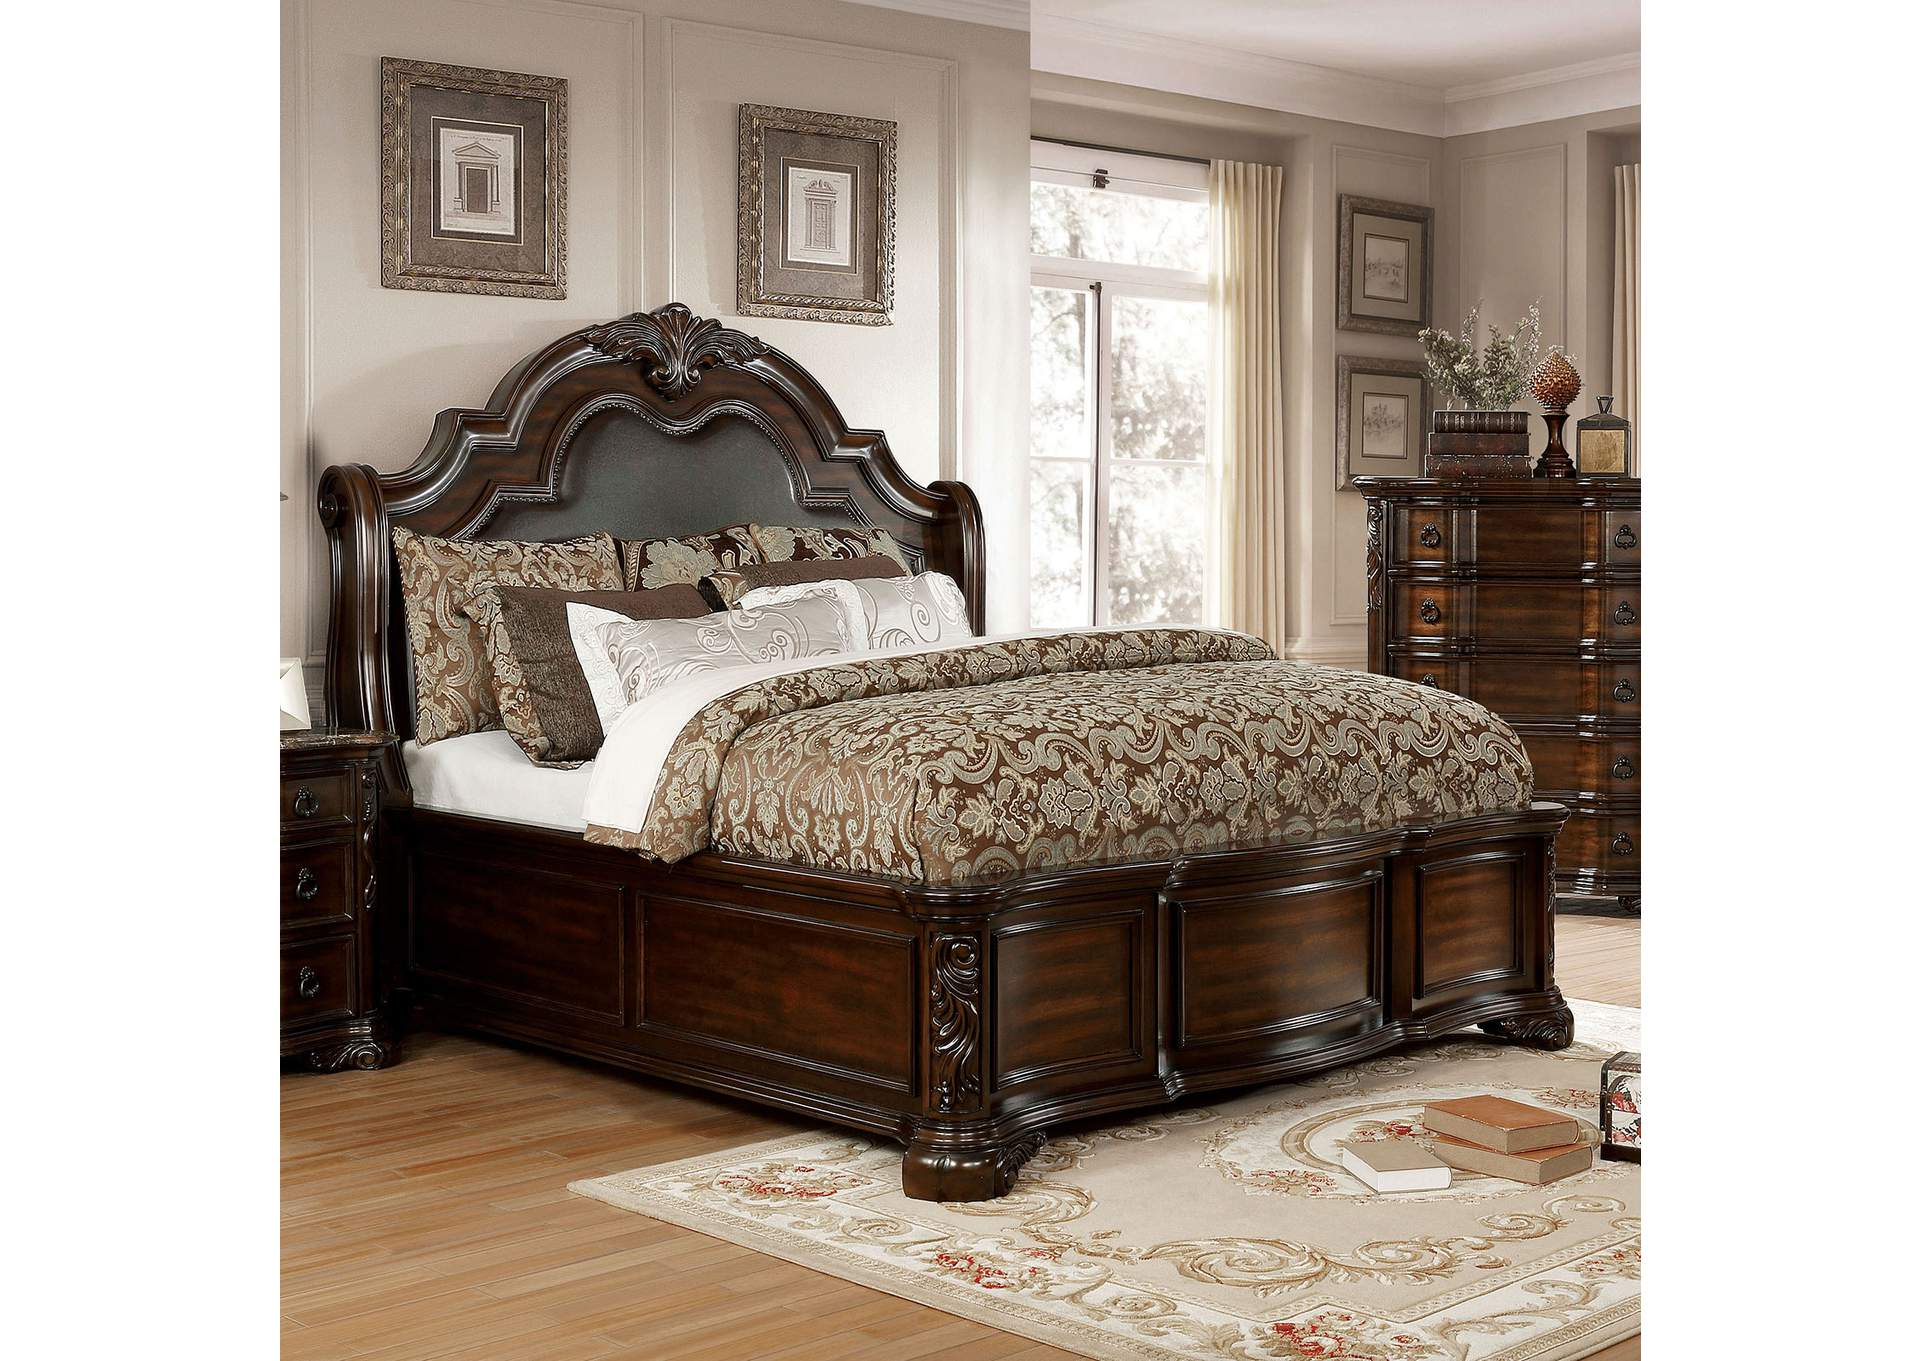 Niketas Brown Uphoolstered Queen Platform Bed,Furniture of America